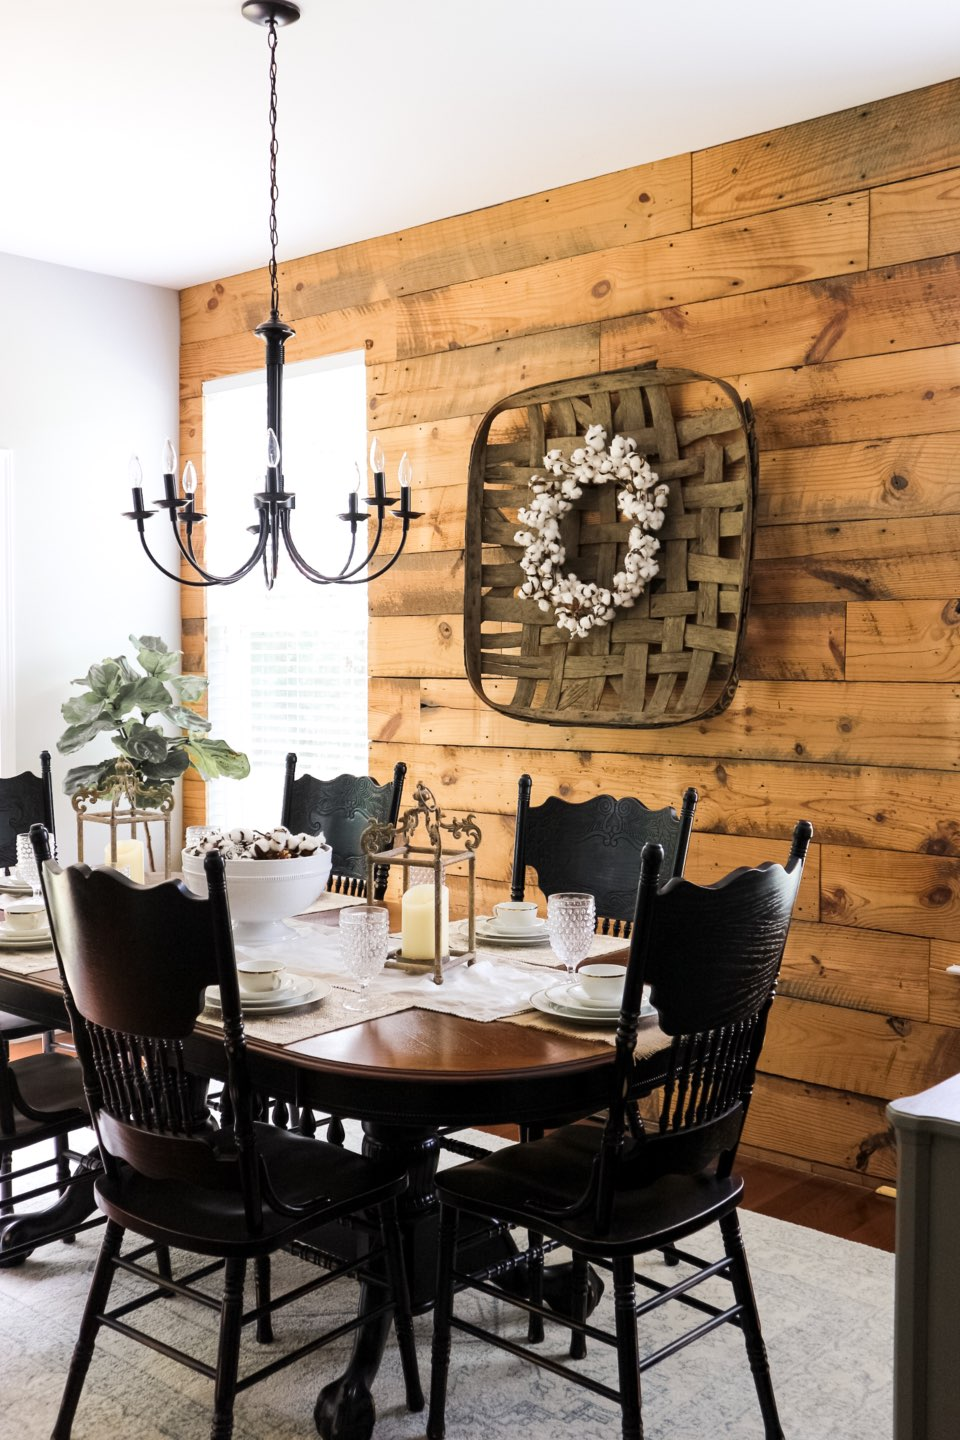 How to Install a Reclaimed Wood Wall - I'm Fixin' To - @mbg0112